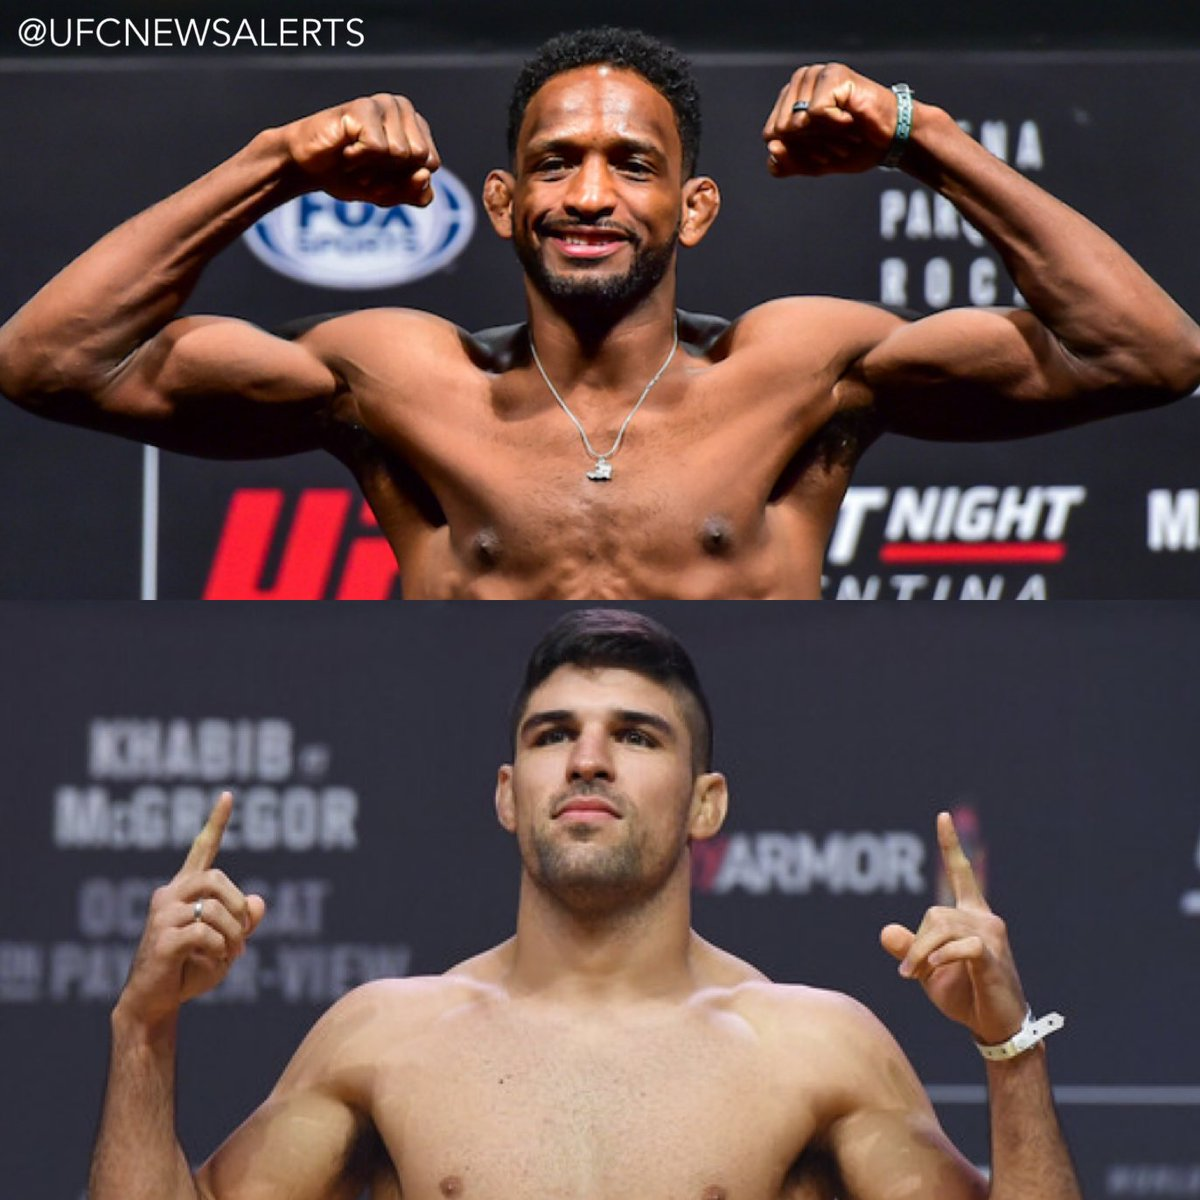 EXCLUSIVE: Neil Magny vs. Vicente Luque in the works for #UFCRochester, New York (May 18th) #UFC #MMA #UFCFightNight151